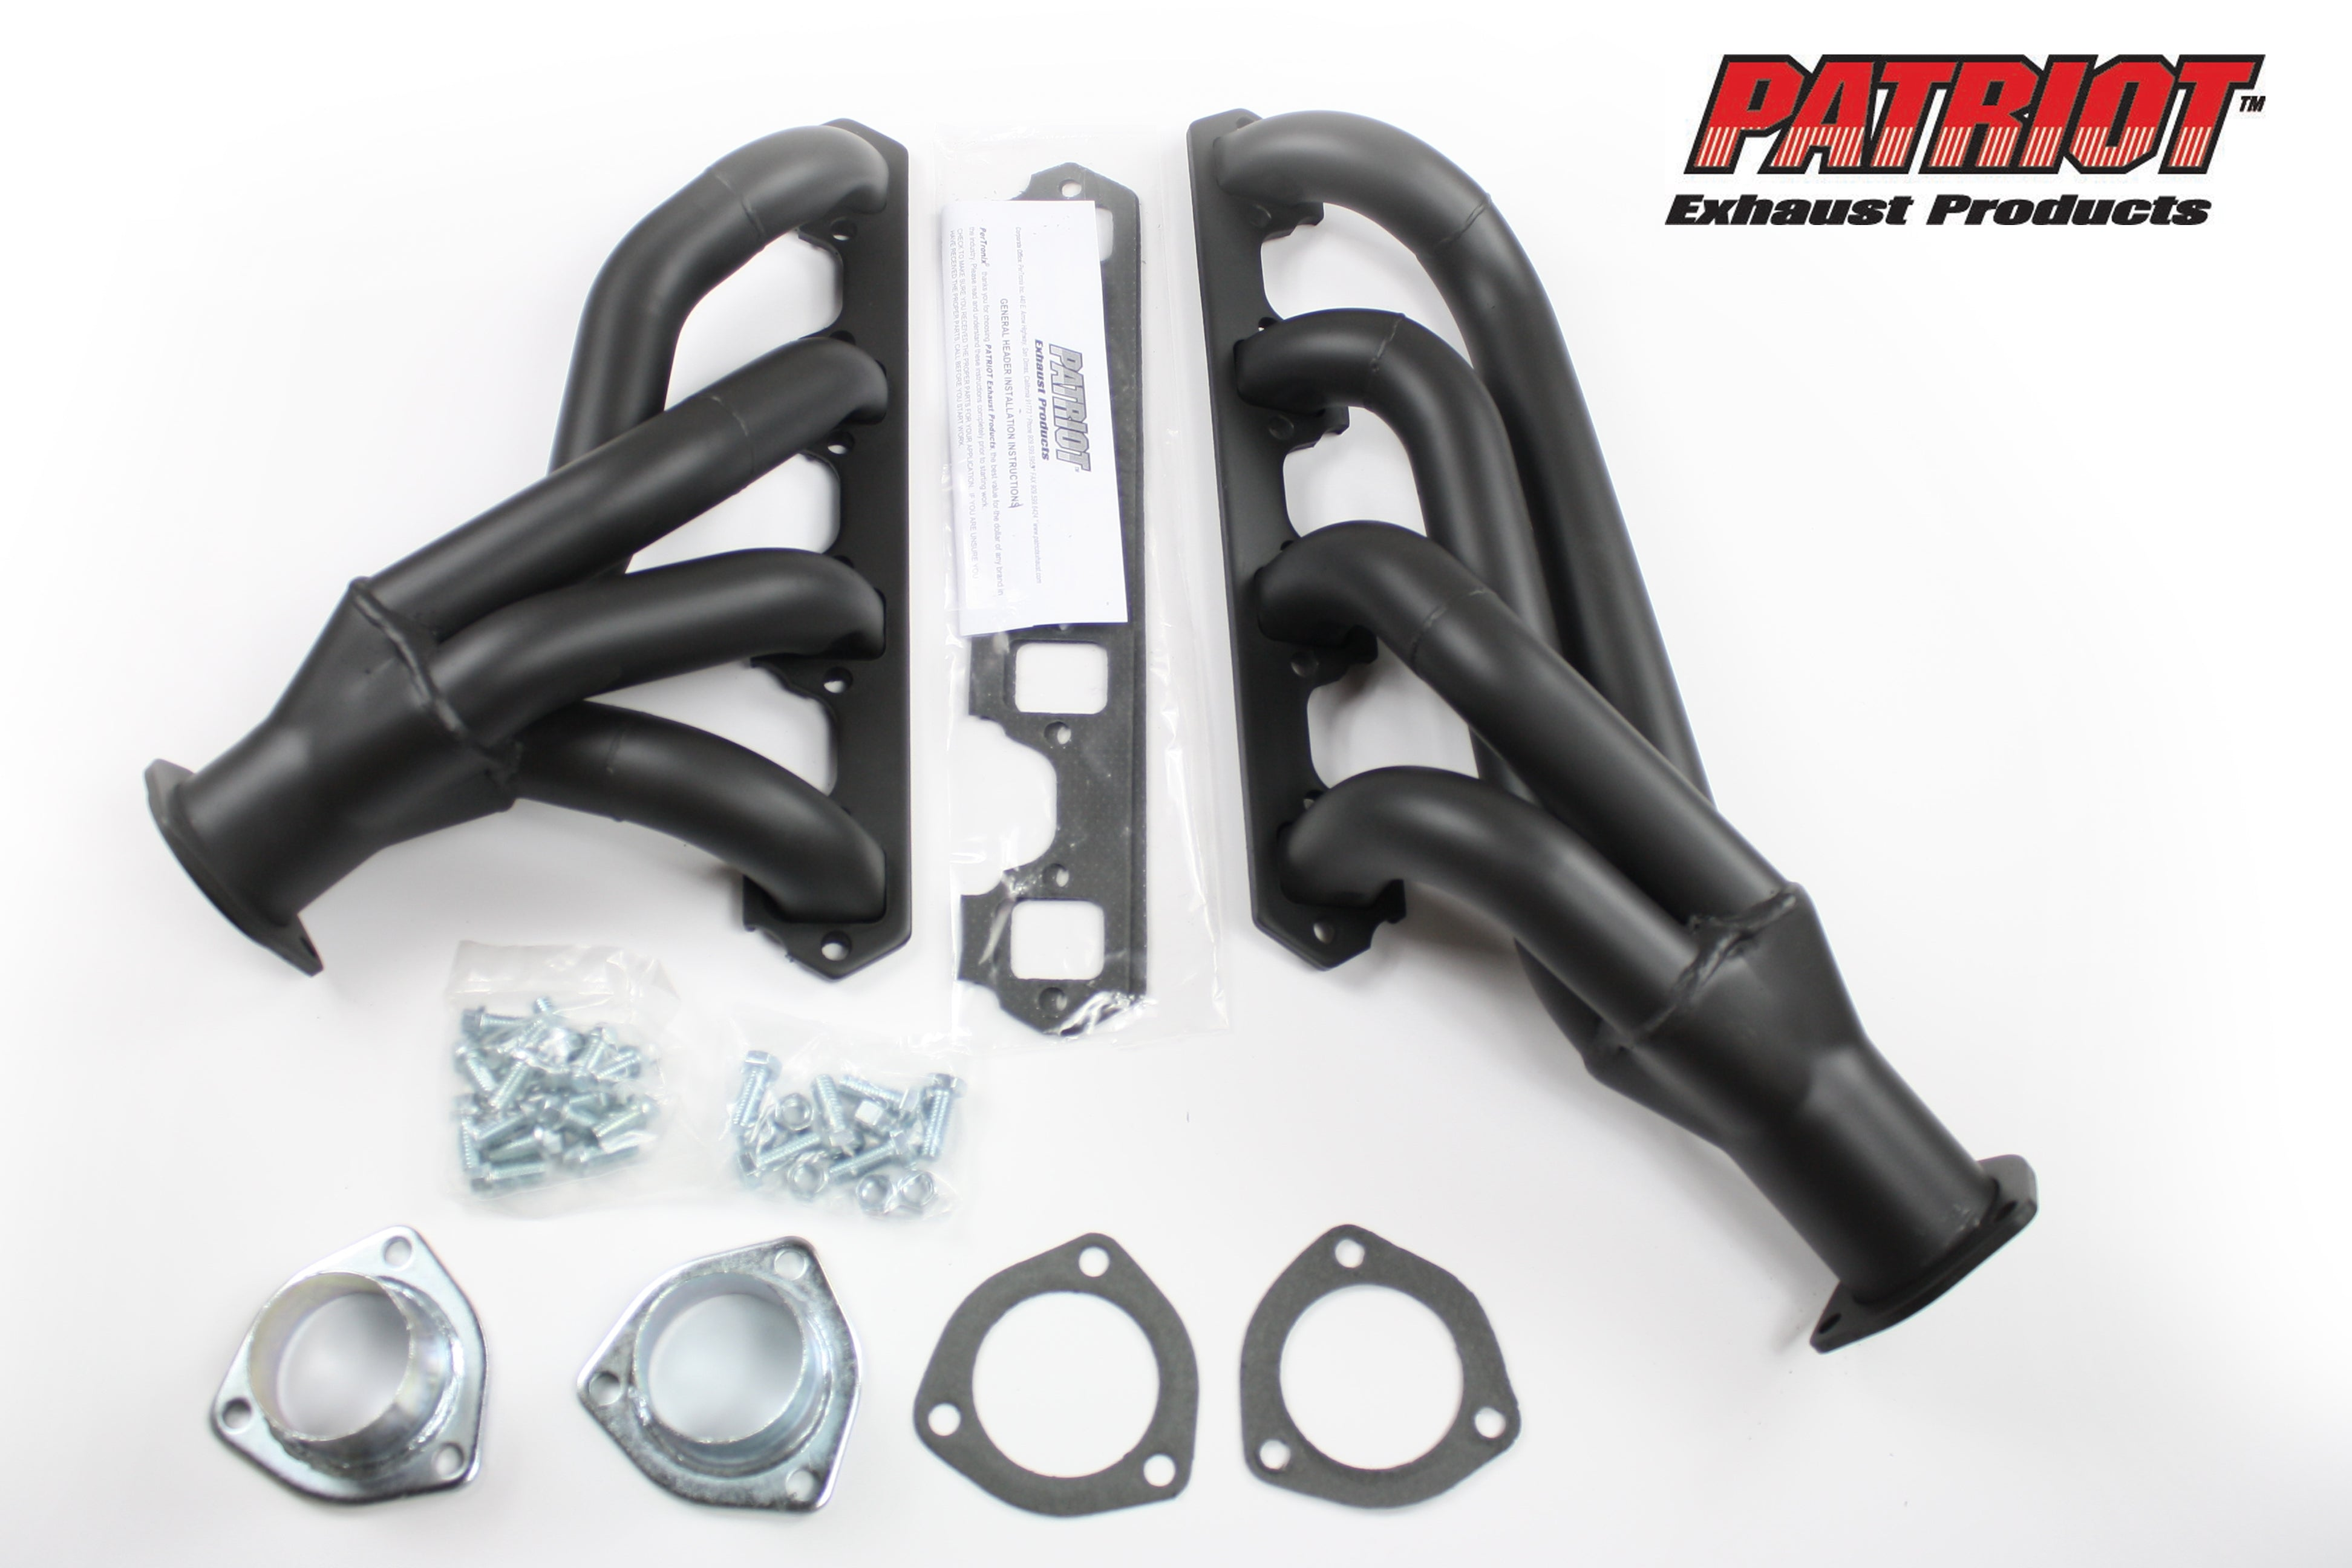 "Patriot Exhaust H8434-B 1 5/8"" Clippster Header Ford Falcon, Ranchero, Mercury Comet Small Block Ford 60-65 Hi-Temp Black Coating"